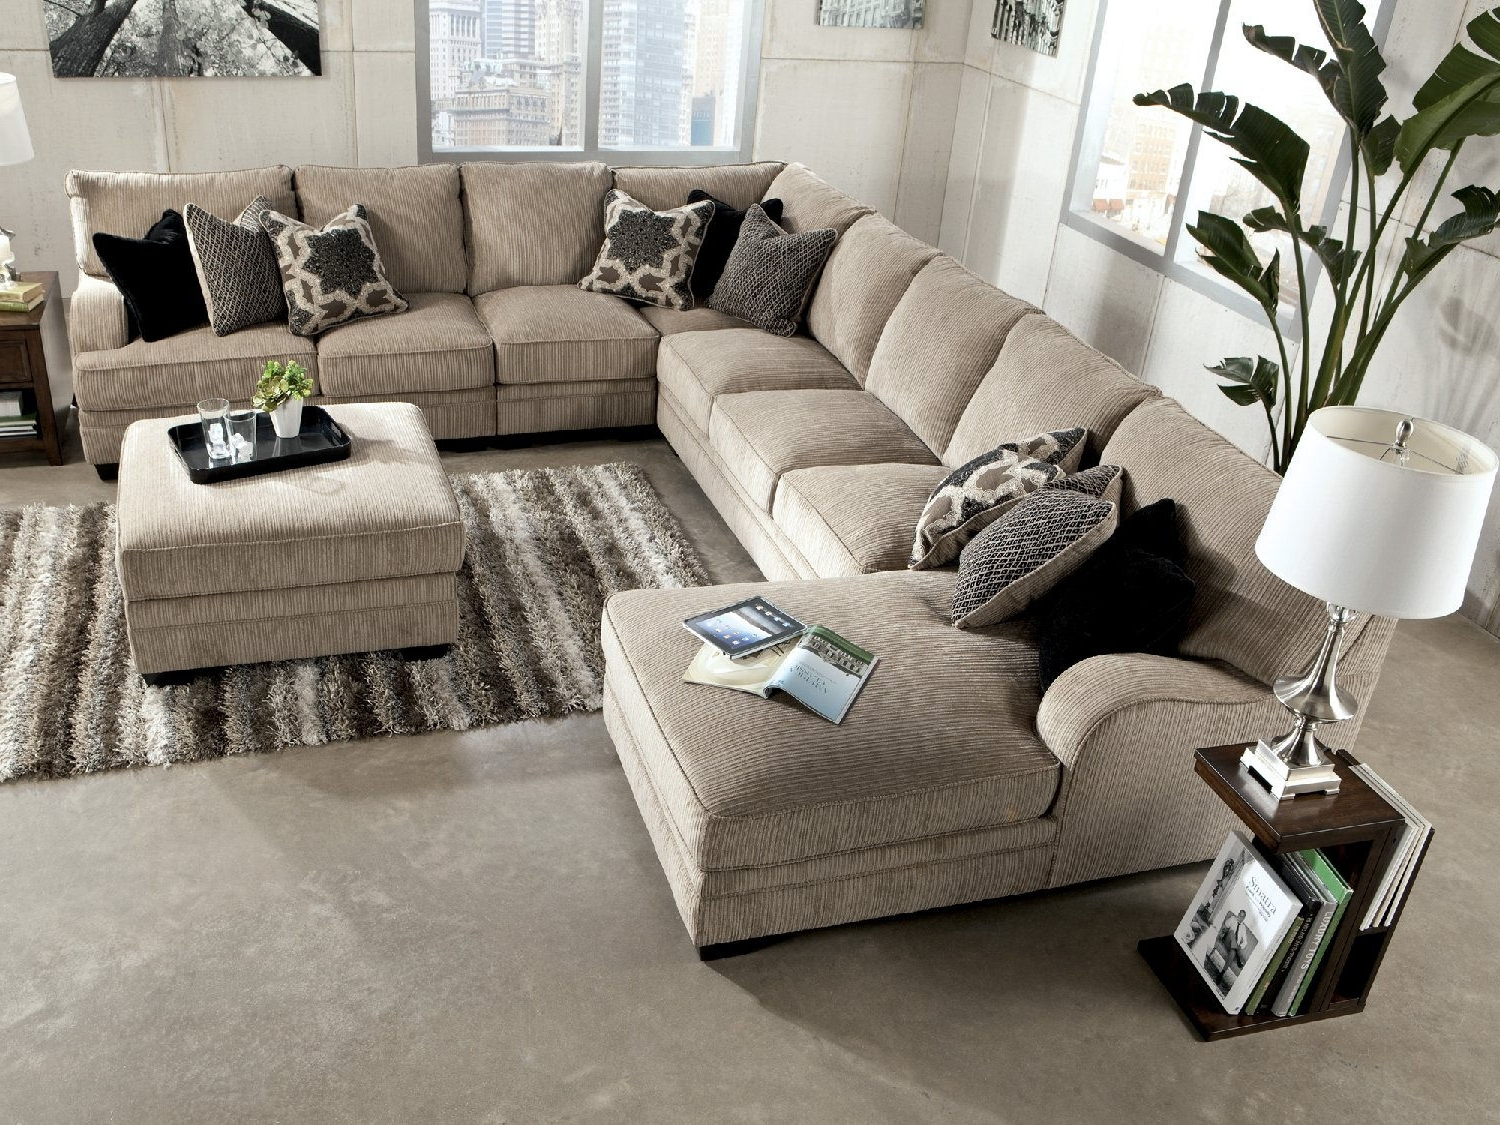 Trendy Fancy Sectional Sofas Mn 36 On Contemporary Sofa Inspiration With In Mn Sectional Sofas (View 6 of 15)